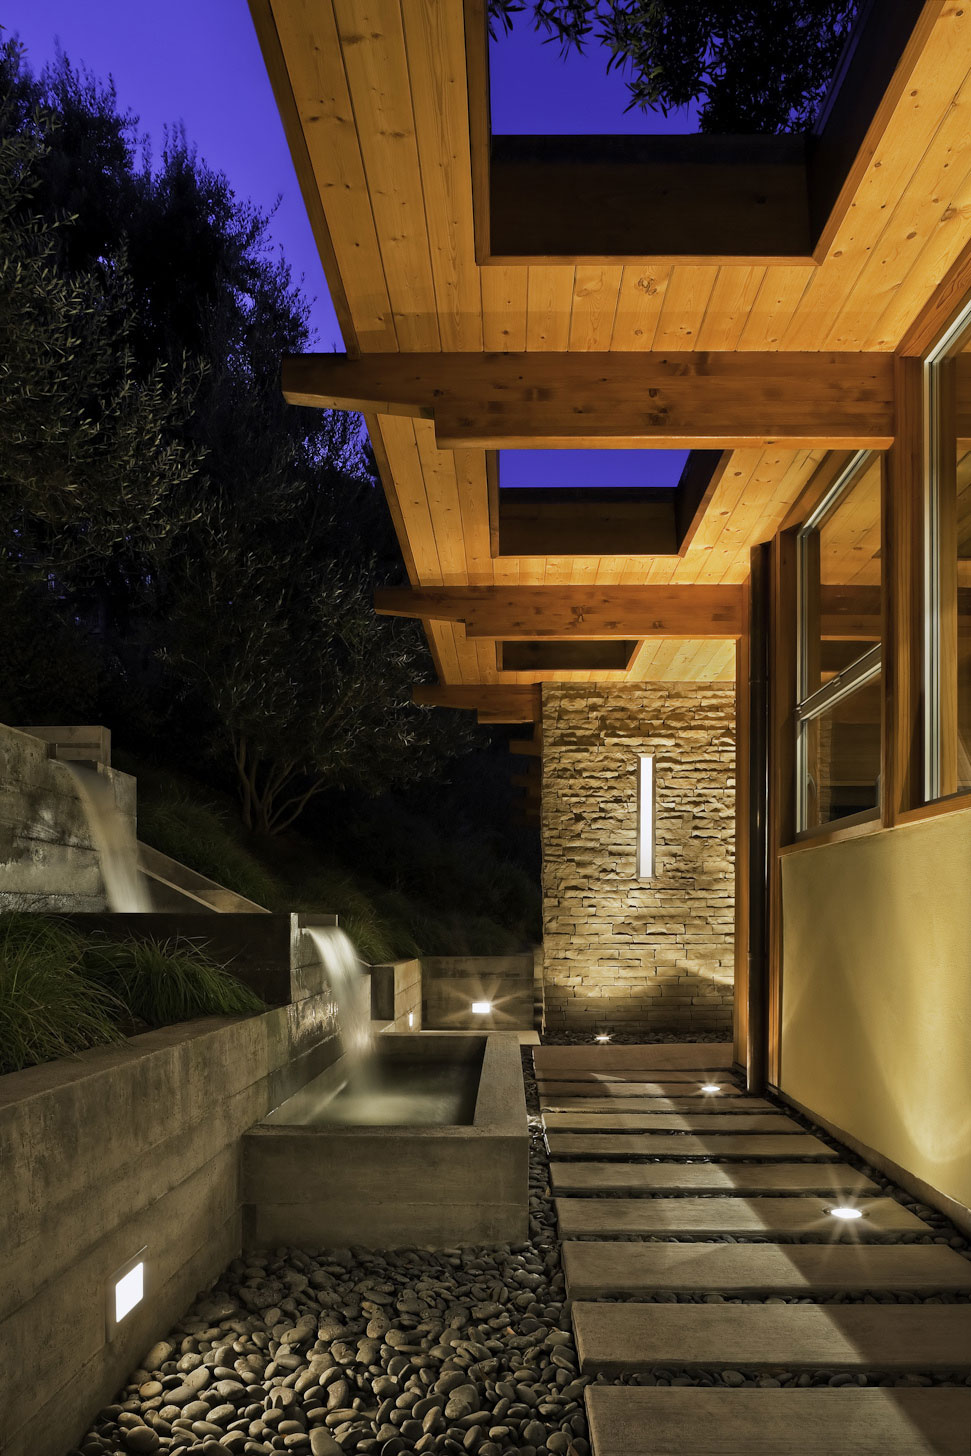 Waterfall Water Feature Pathway Lighting MidCentury